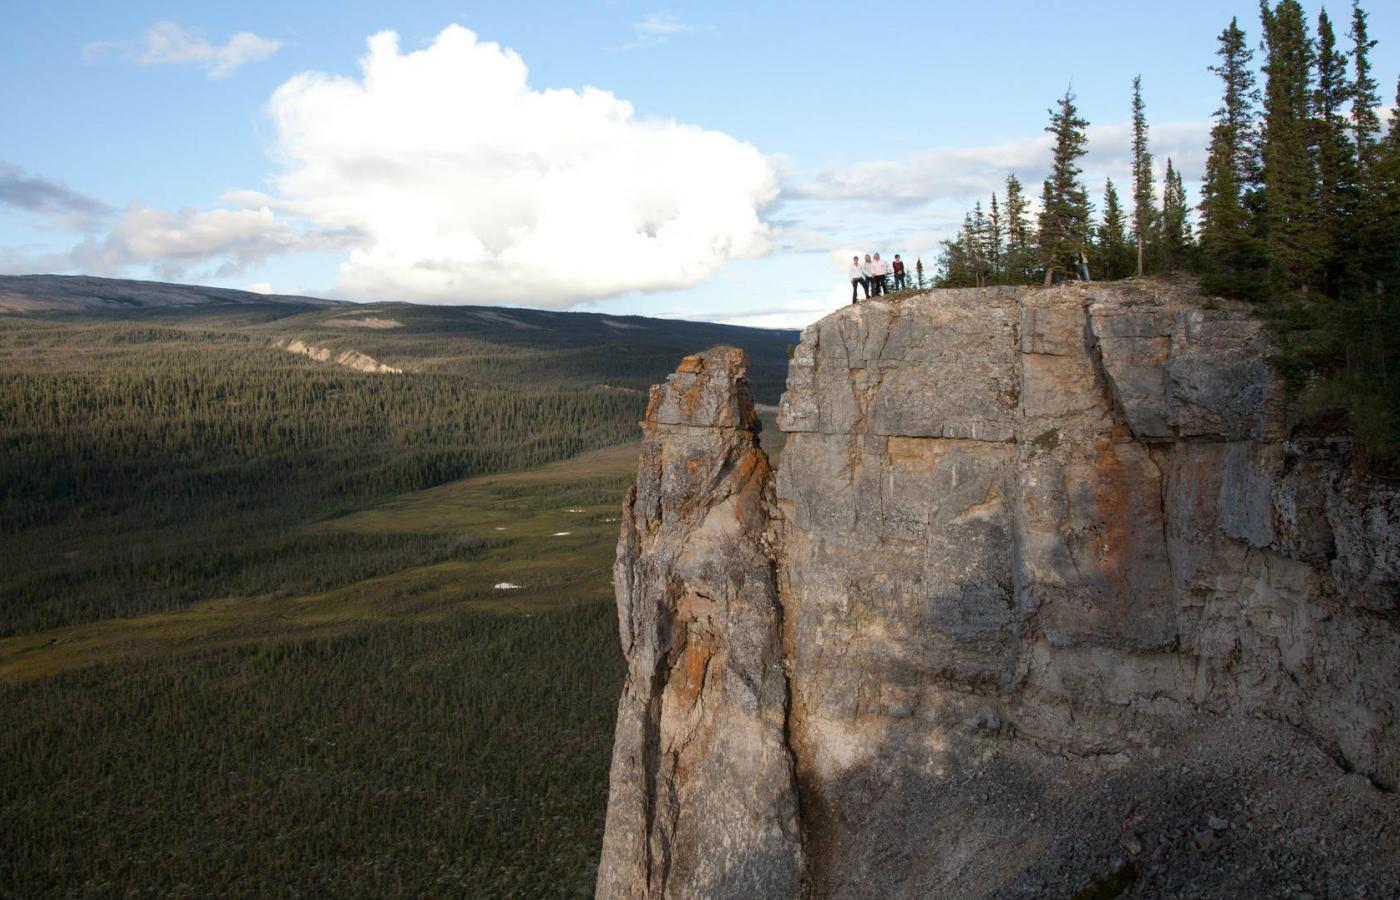 norman wells hiking nwt mackenzie mountains